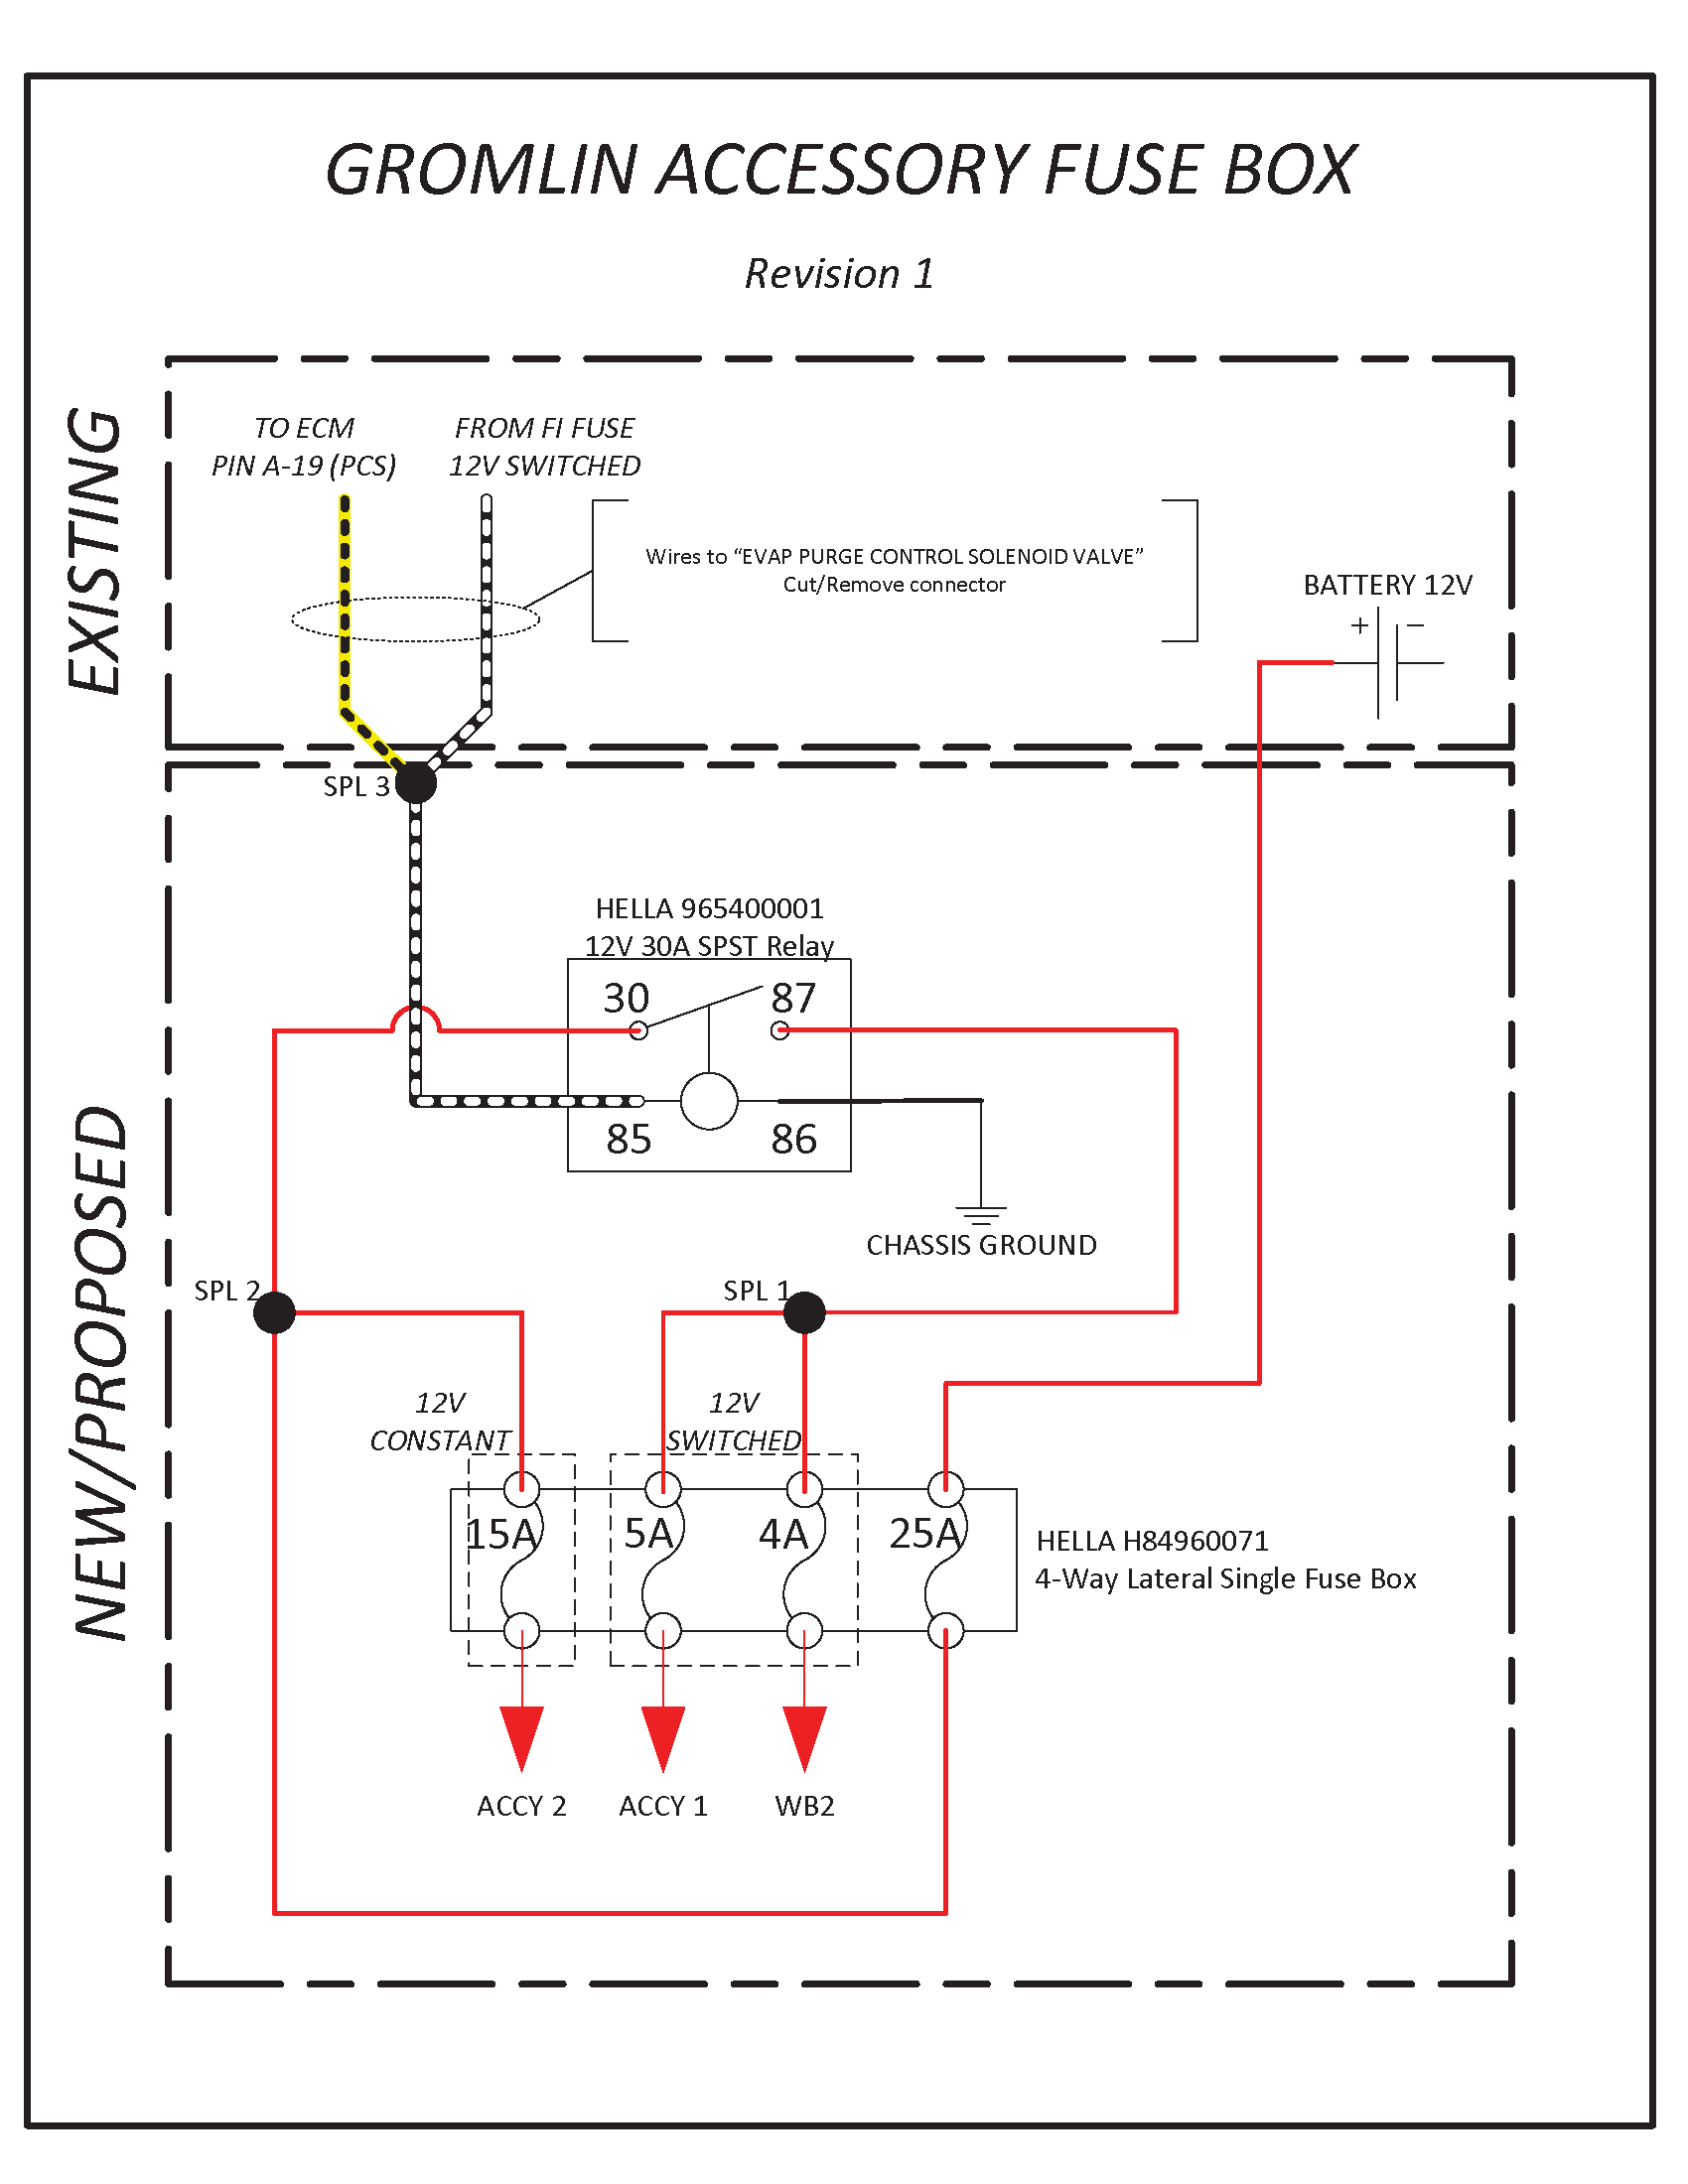 Fuse Box Duluth Ga - 2006 Mdx Fuse Box for Wiring Diagram SchematicsWiring Diagram Schematics